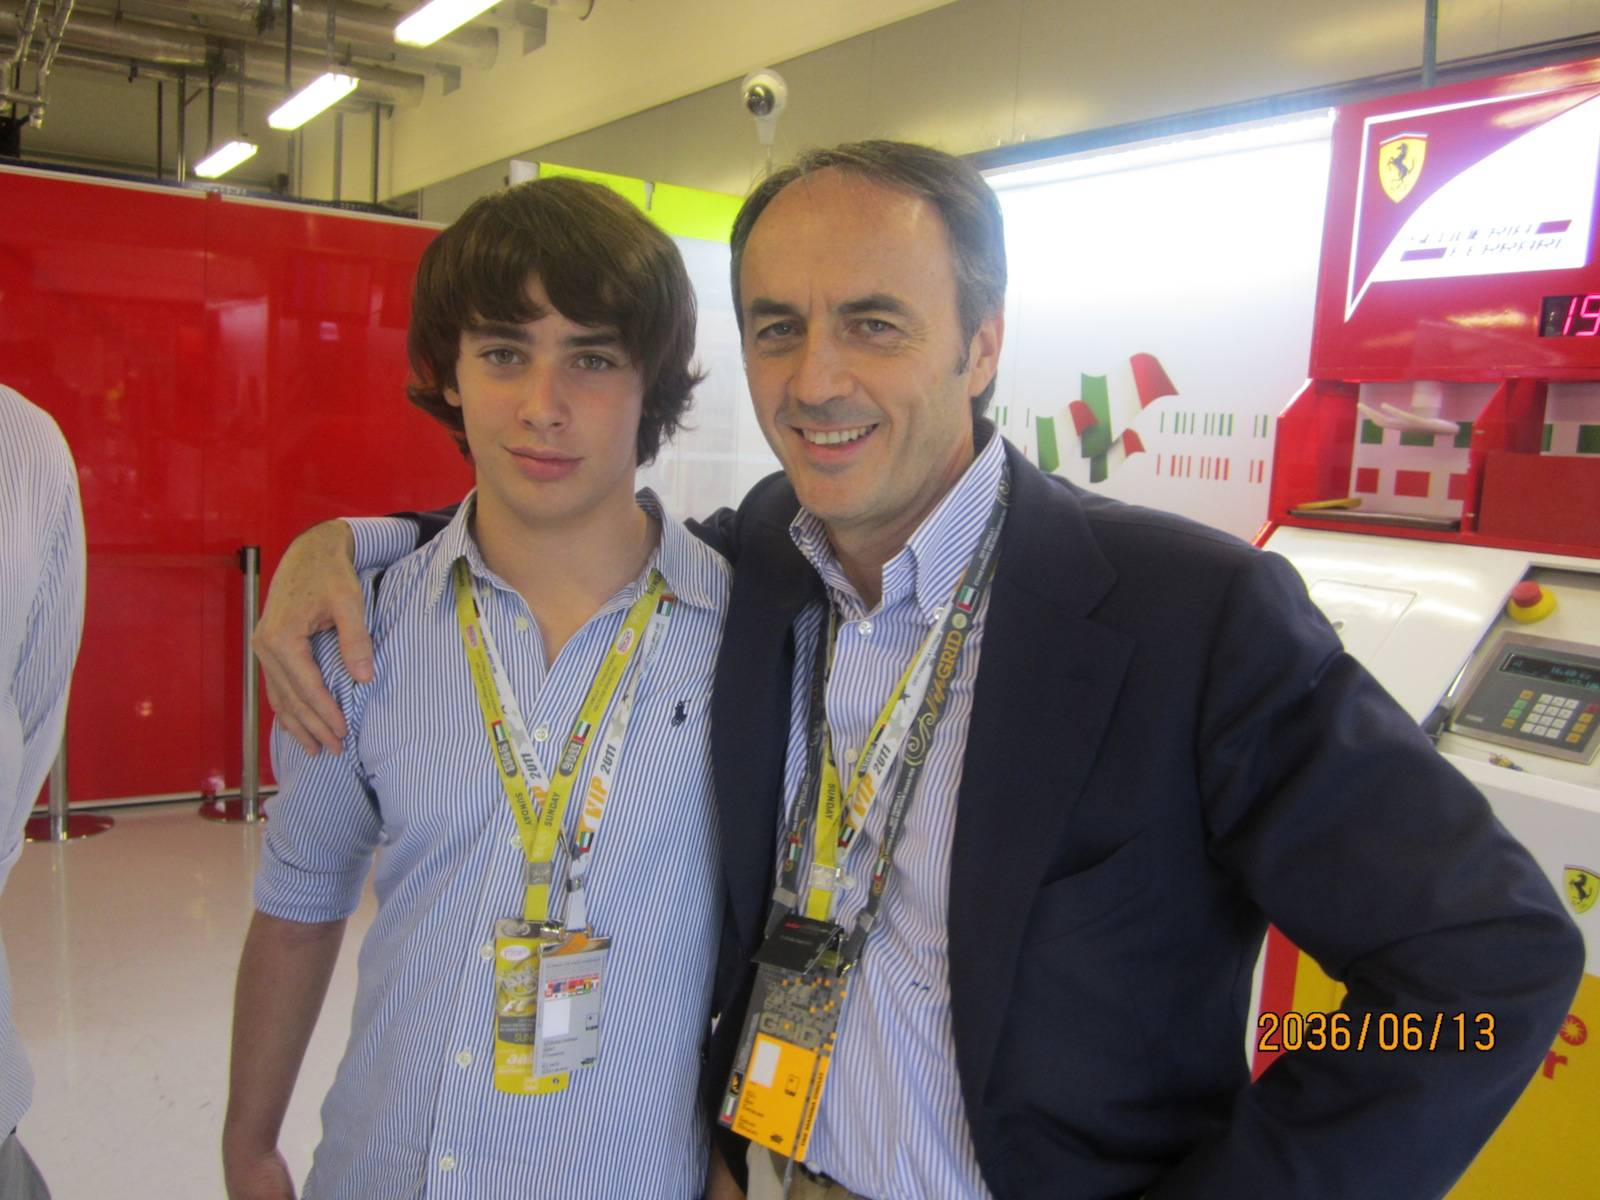 Nerio Alessandri, owner and founder of TechnoGym and son